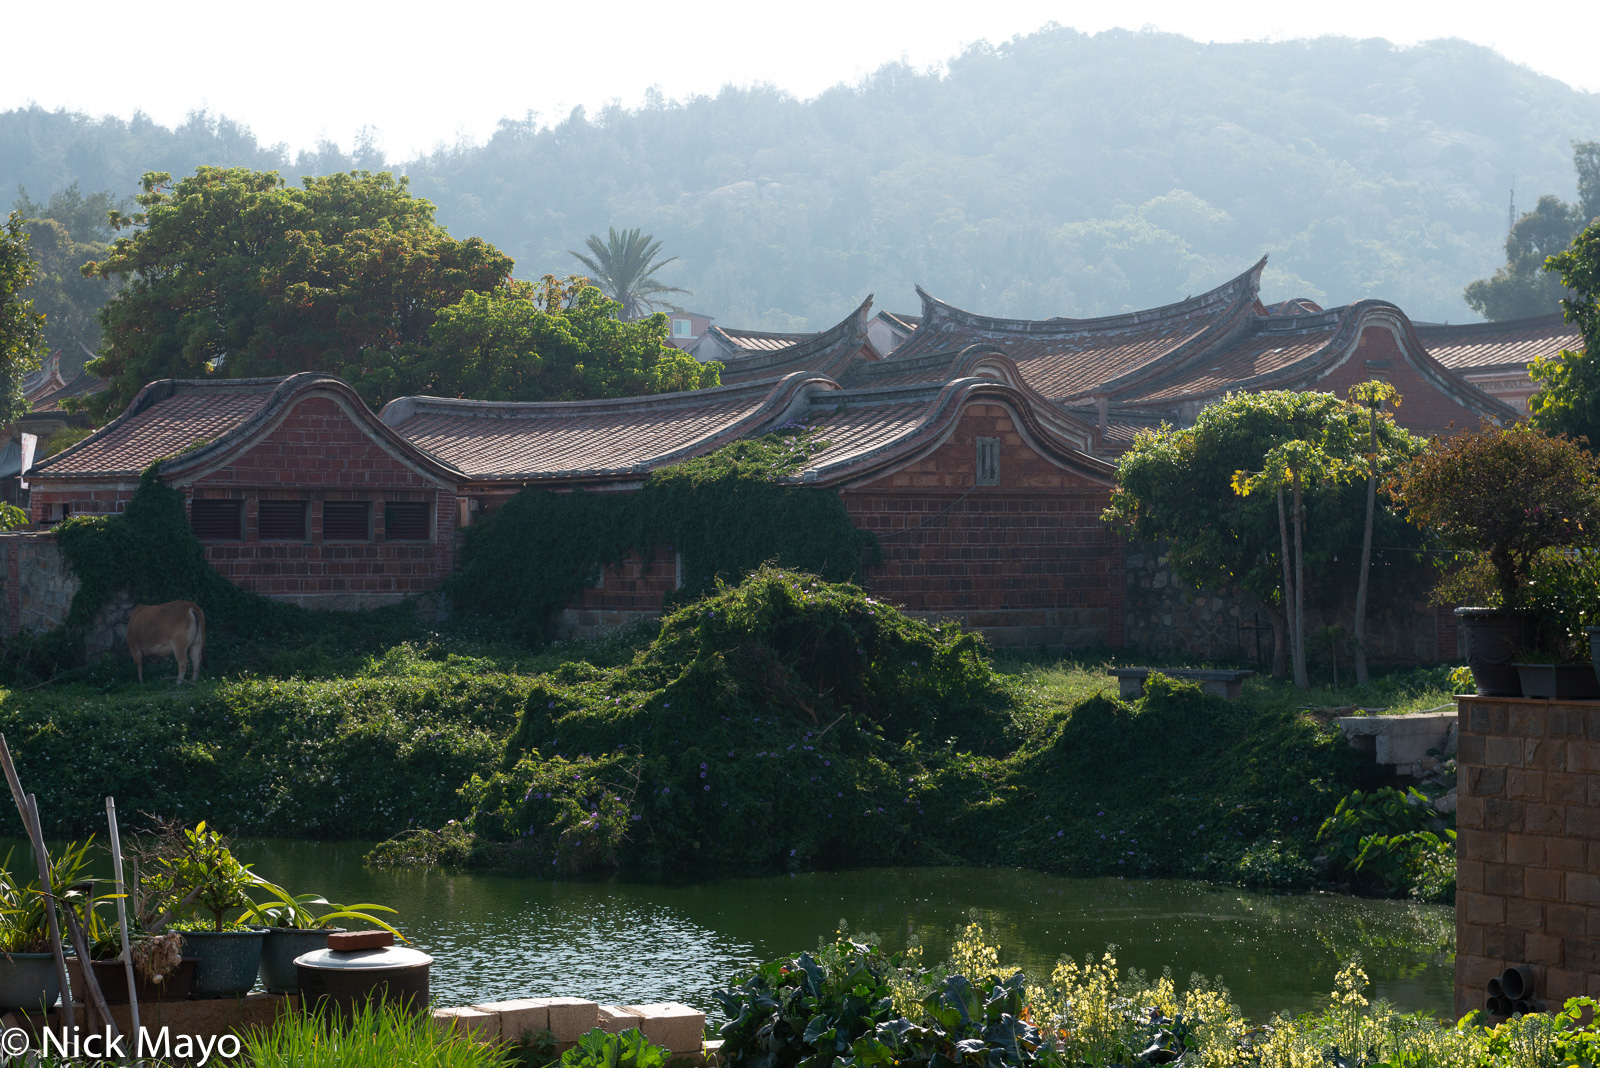 Minnan style architecture with its distinctive roofs at Shanhou village on Kinmen.